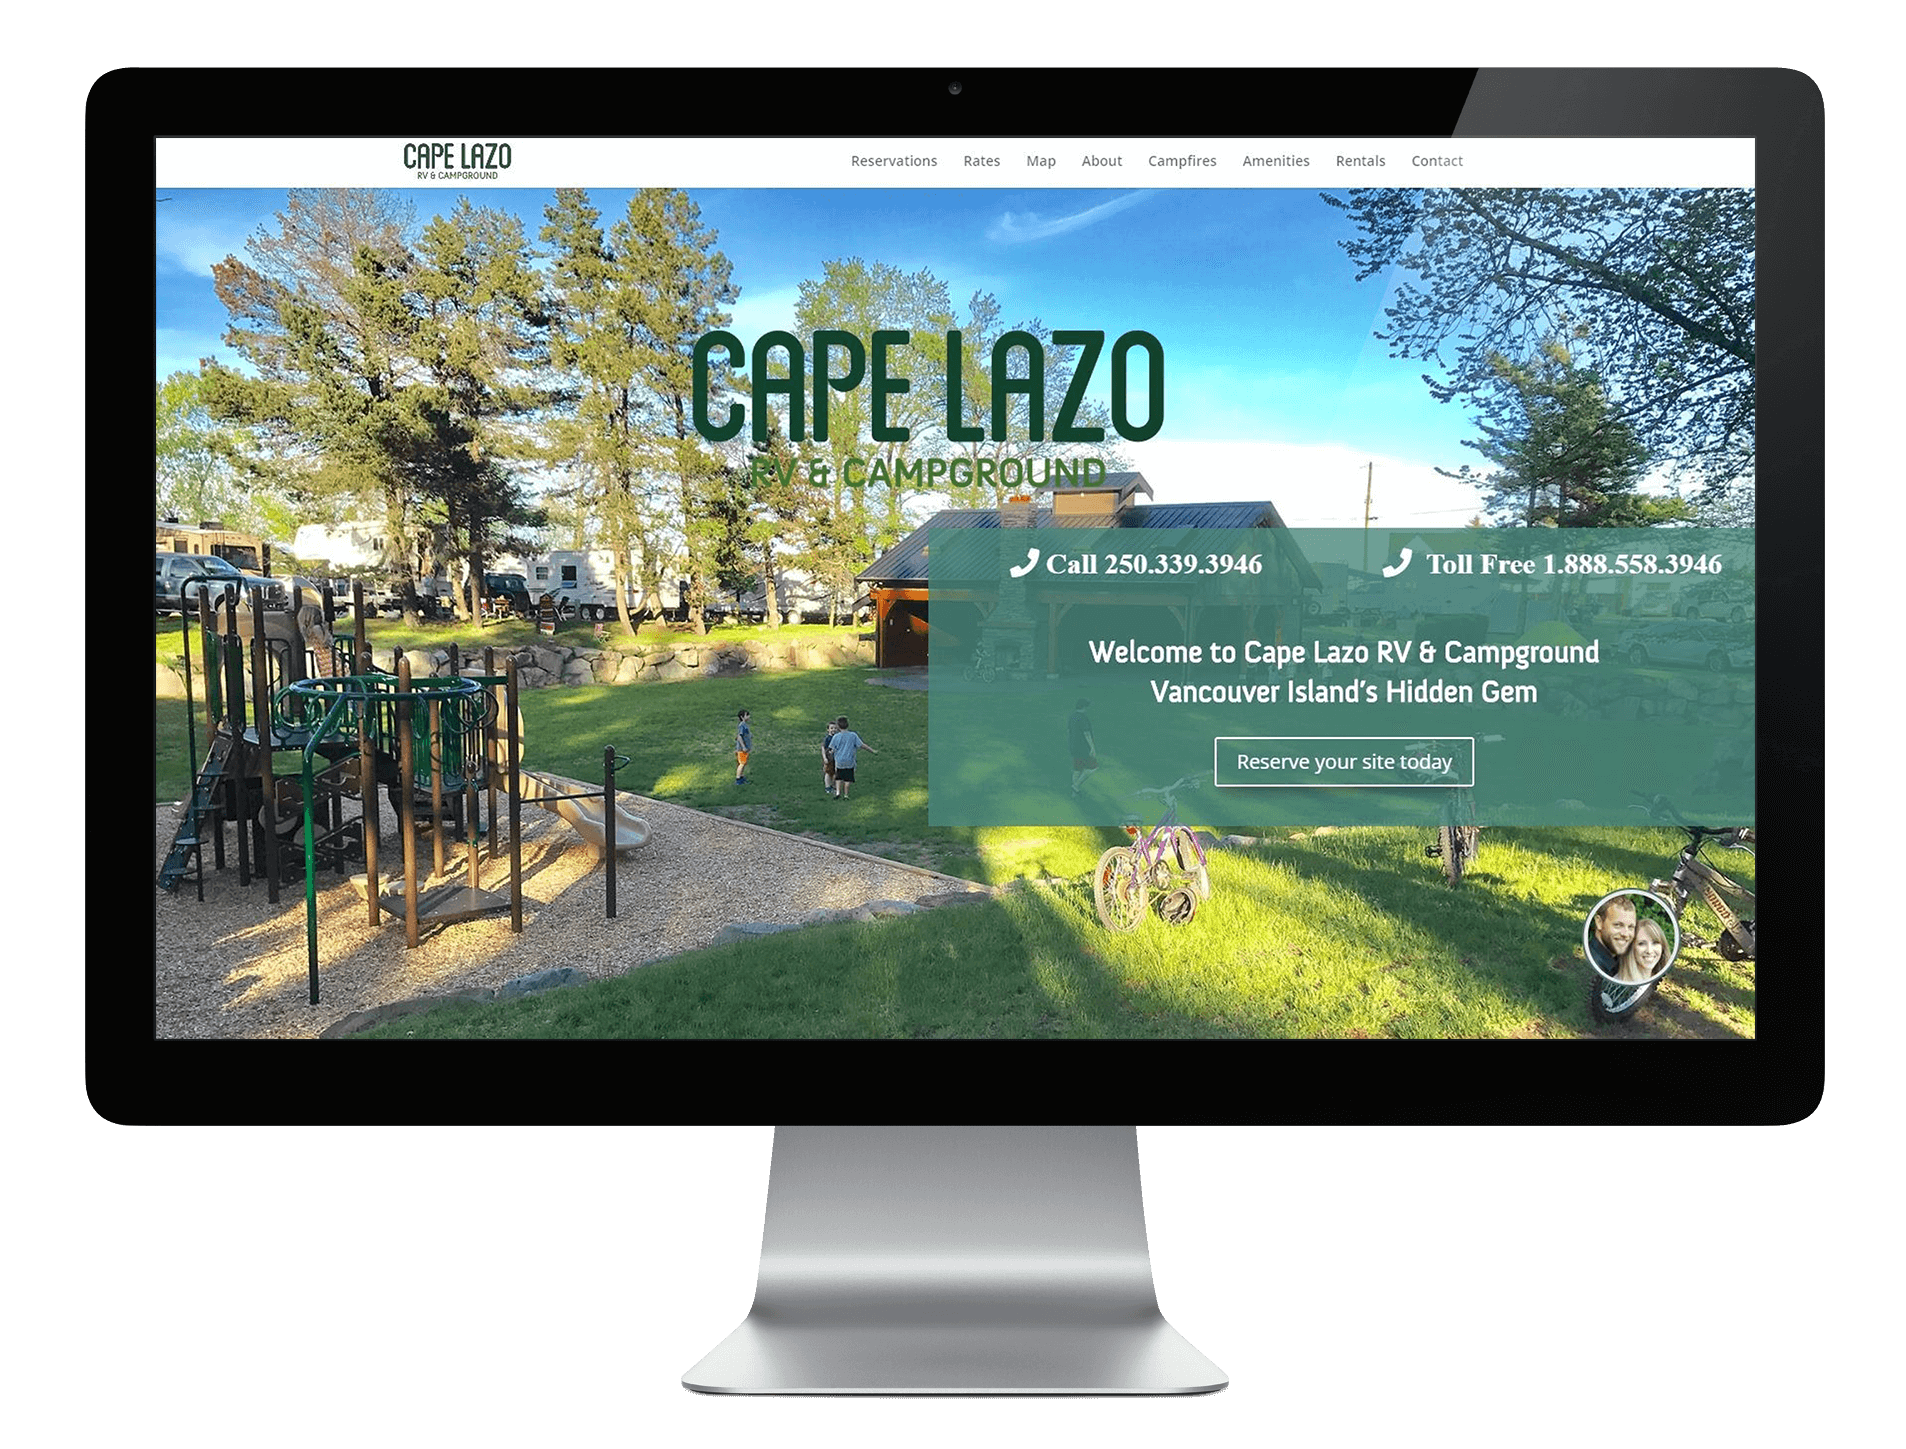 Cape Lazo RV & Campground Website Screen Capture